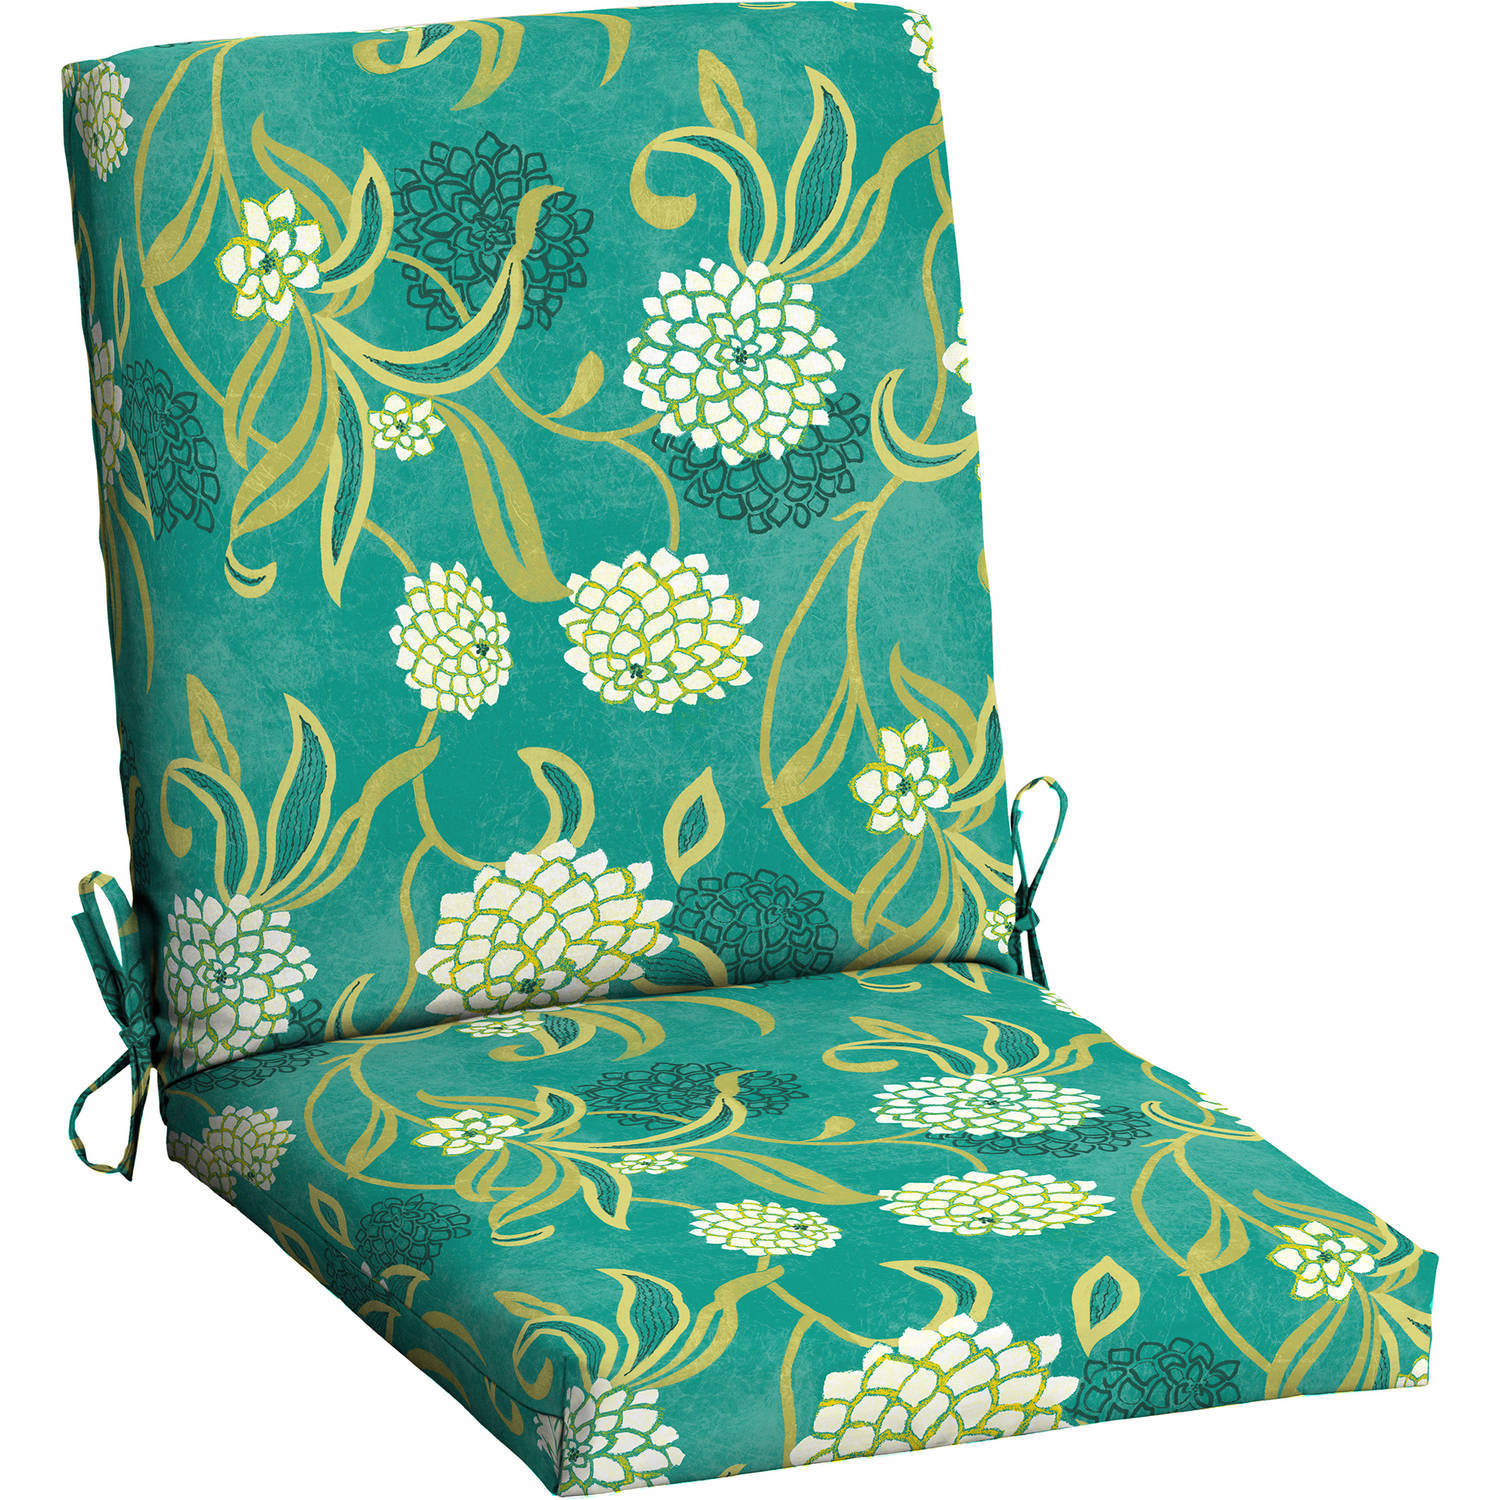 patio dining chair cushions. Mainstays Outdoor Patio Dining Chair Cushion Cushions I